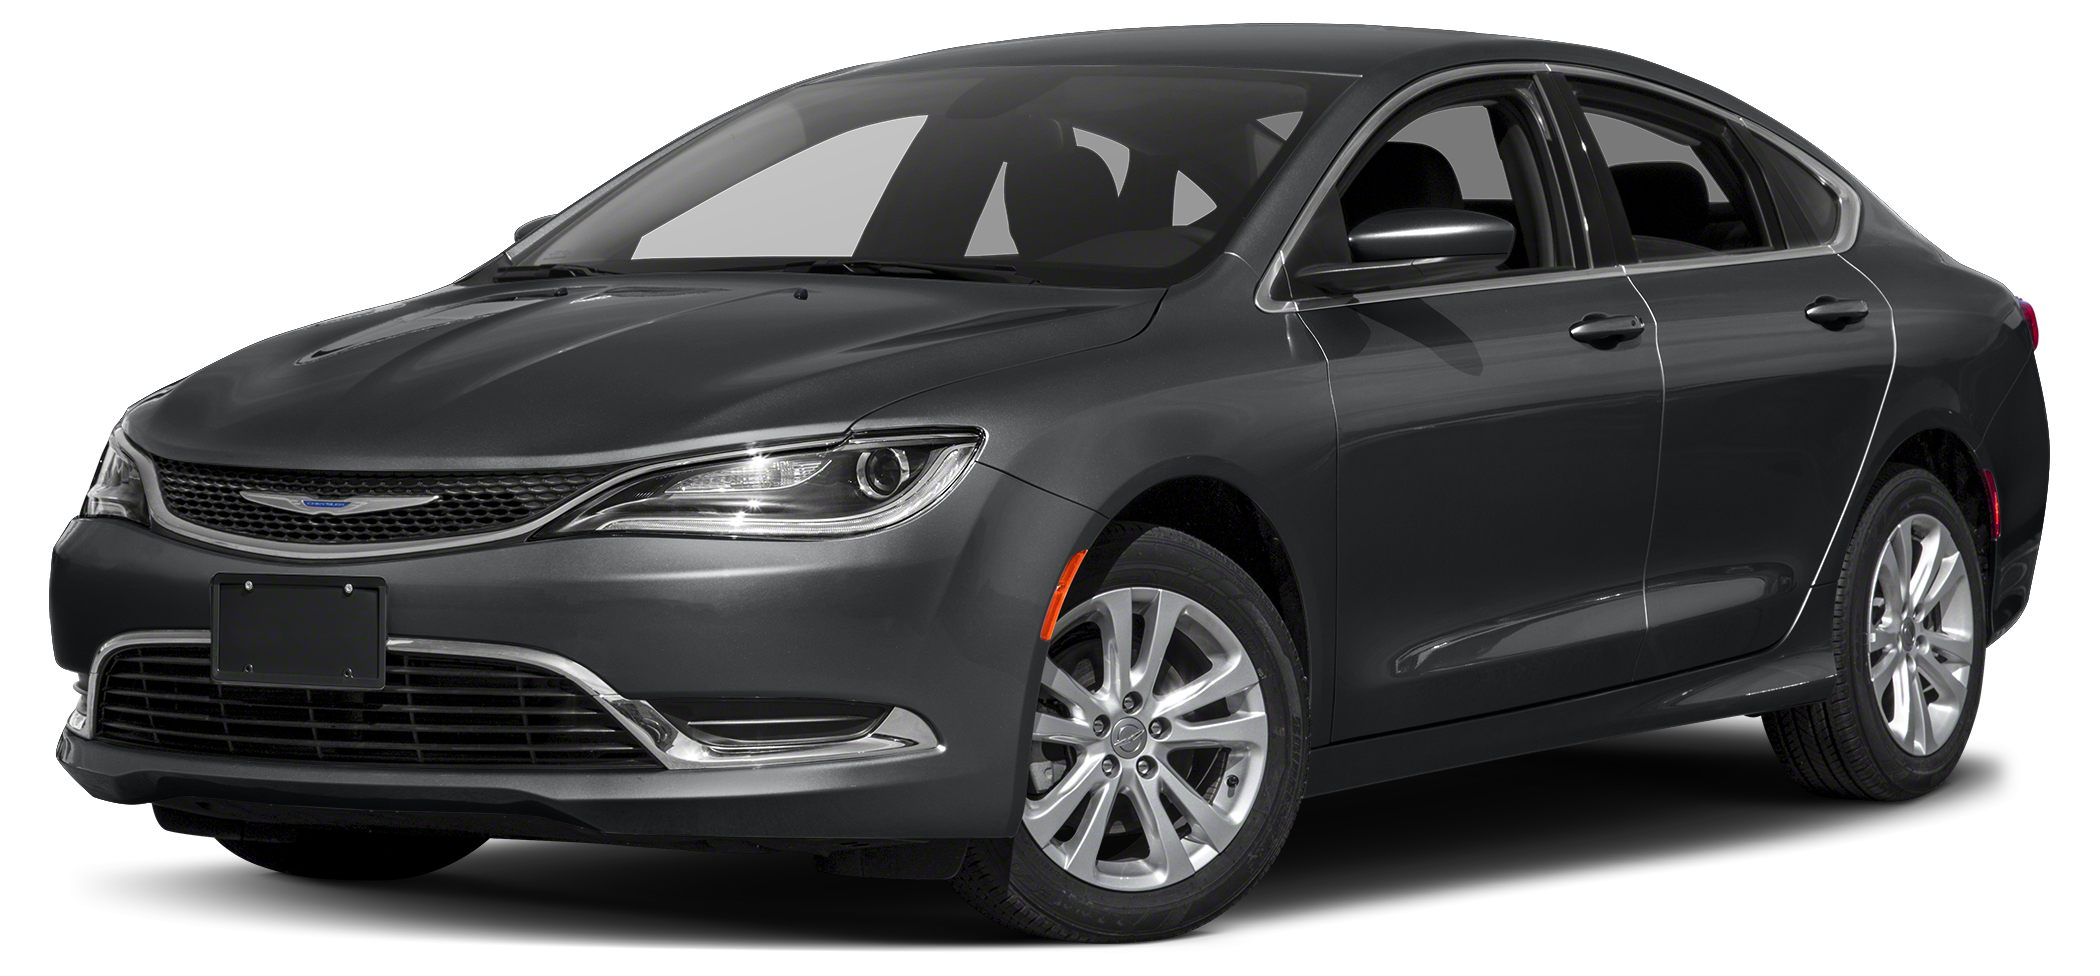 2015 Chrysler 200 Limited Grab a score on this 2015 Chrysler 200 Limited before someone else takes